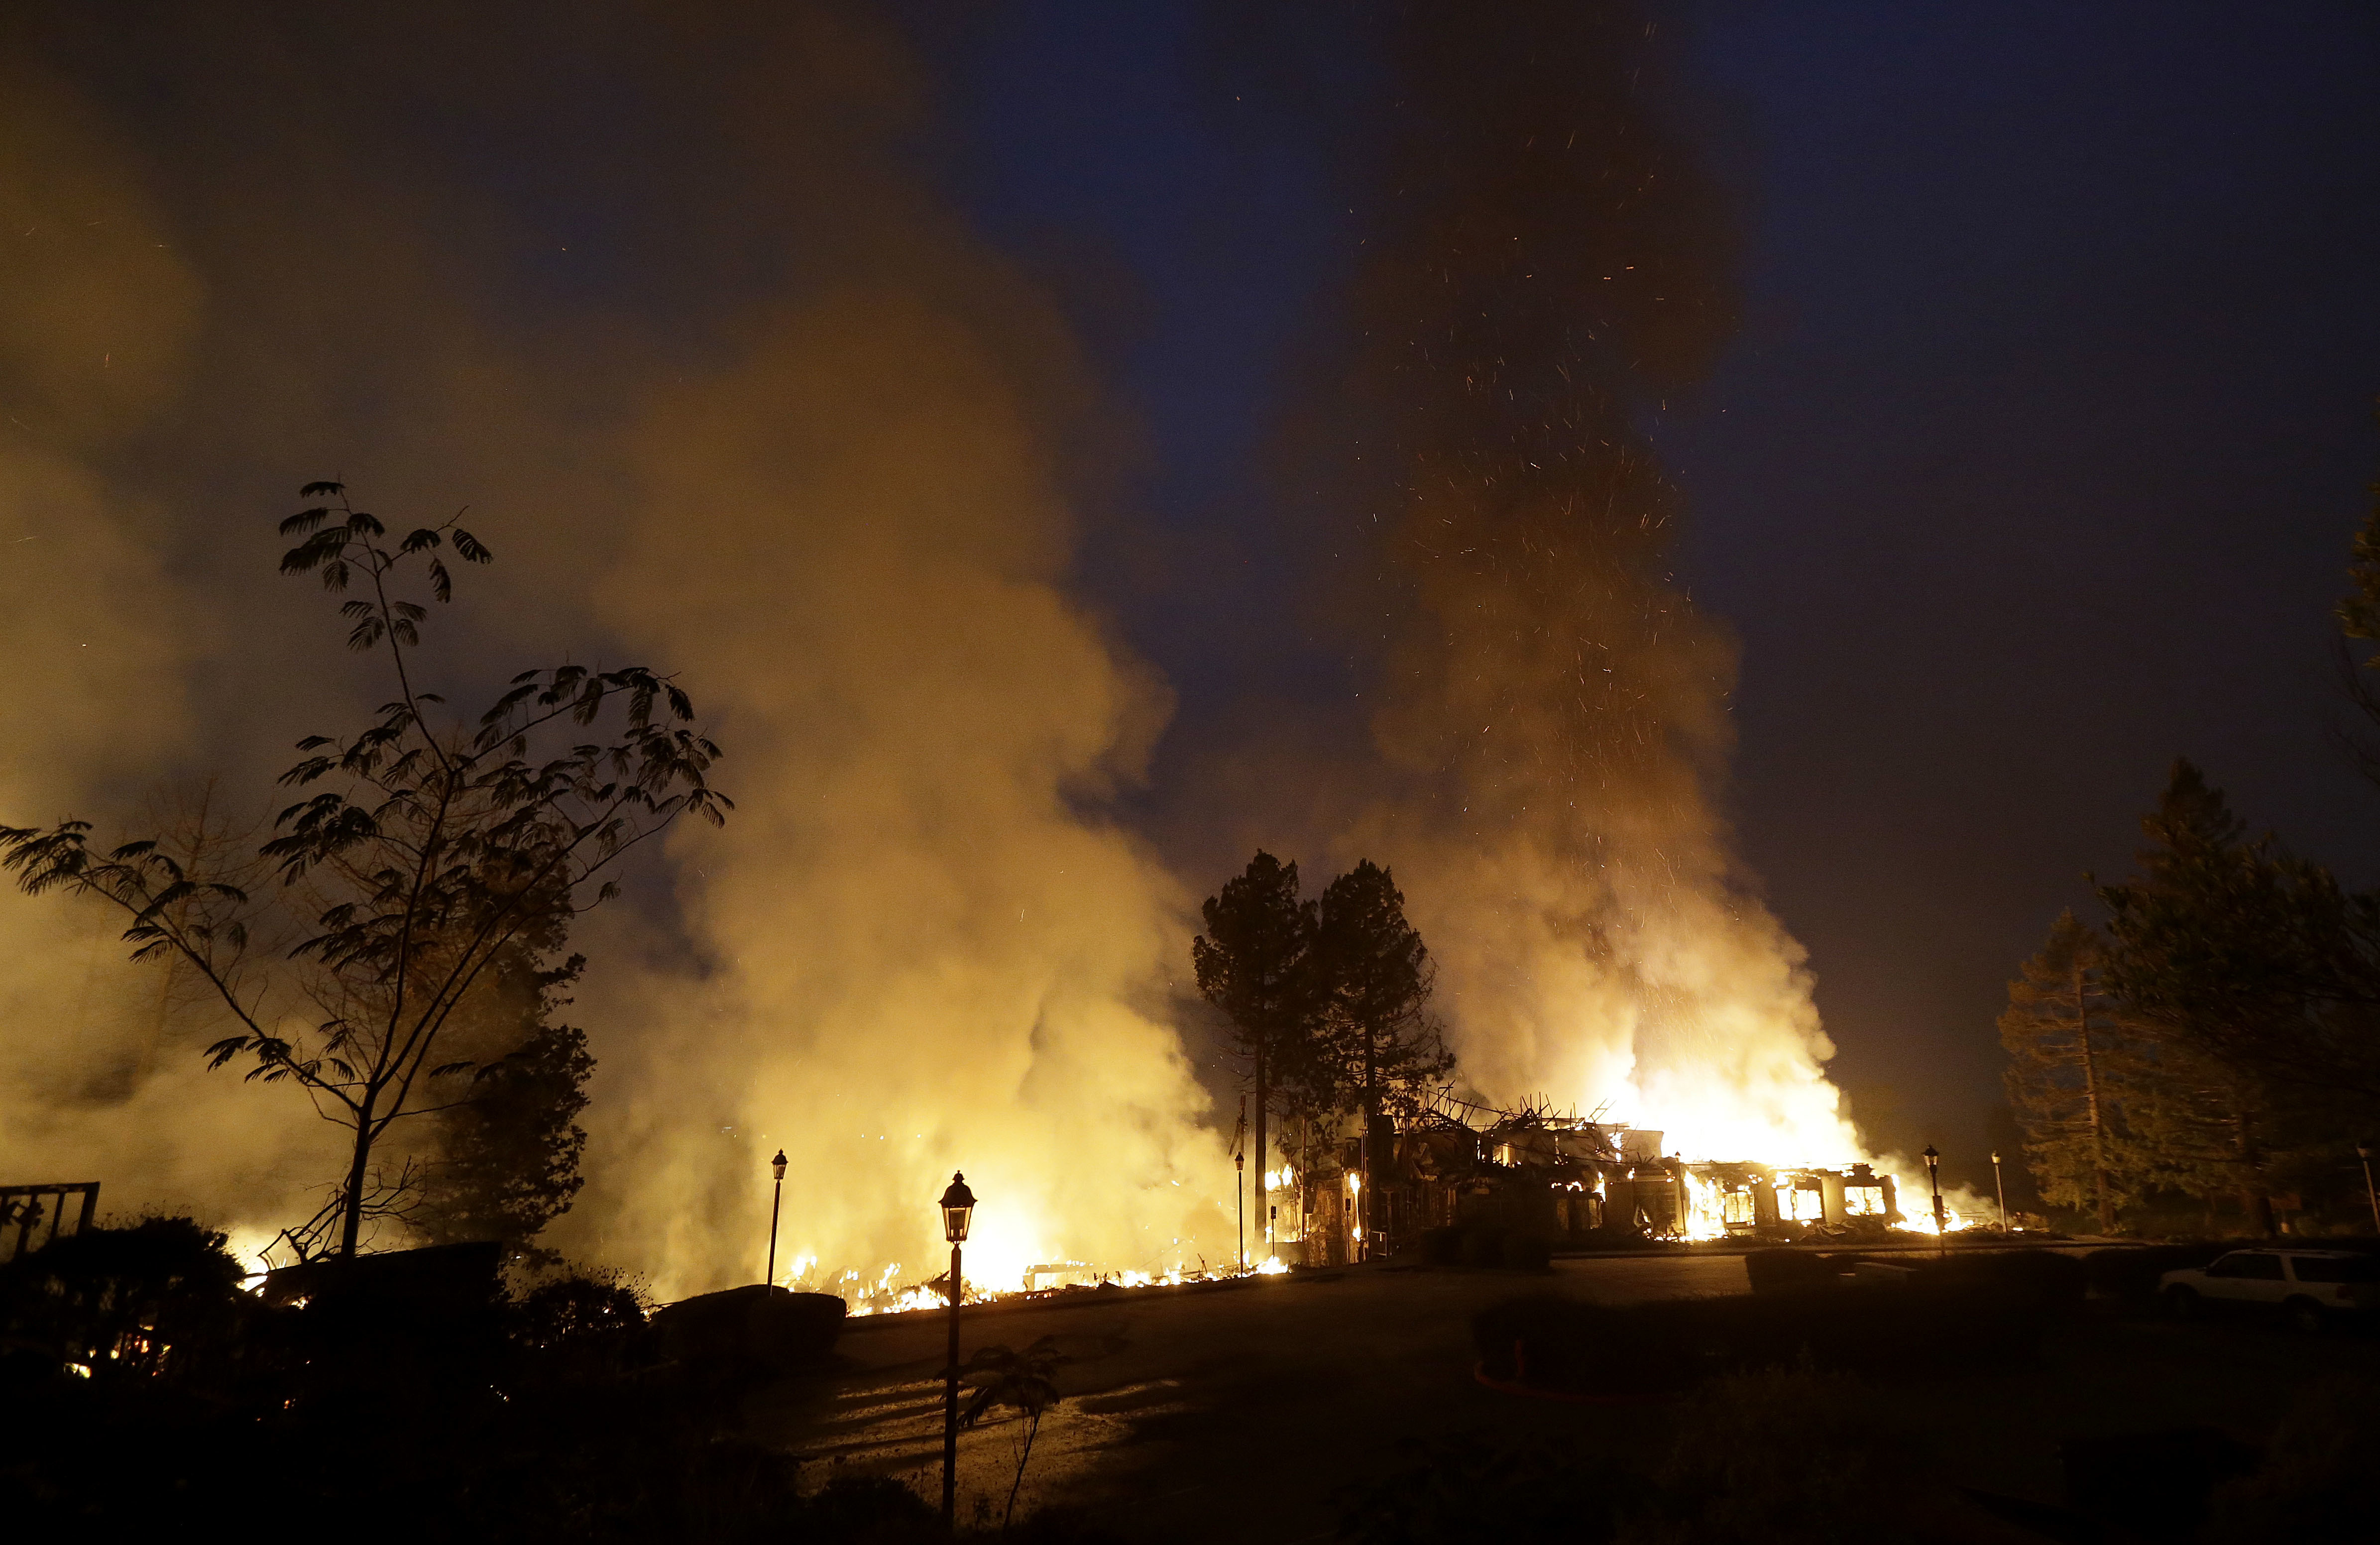 <div class='meta'><div class='origin-logo' data-origin='none'></div><span class='caption-text' data-credit='Jeff Chiu/AP Photo'>Smoke and flames from fire at the Hilton Sonoma Wine Country hotel in Santa Rosa, Calif., Monday, Oct. 9, 2017.</span></div>